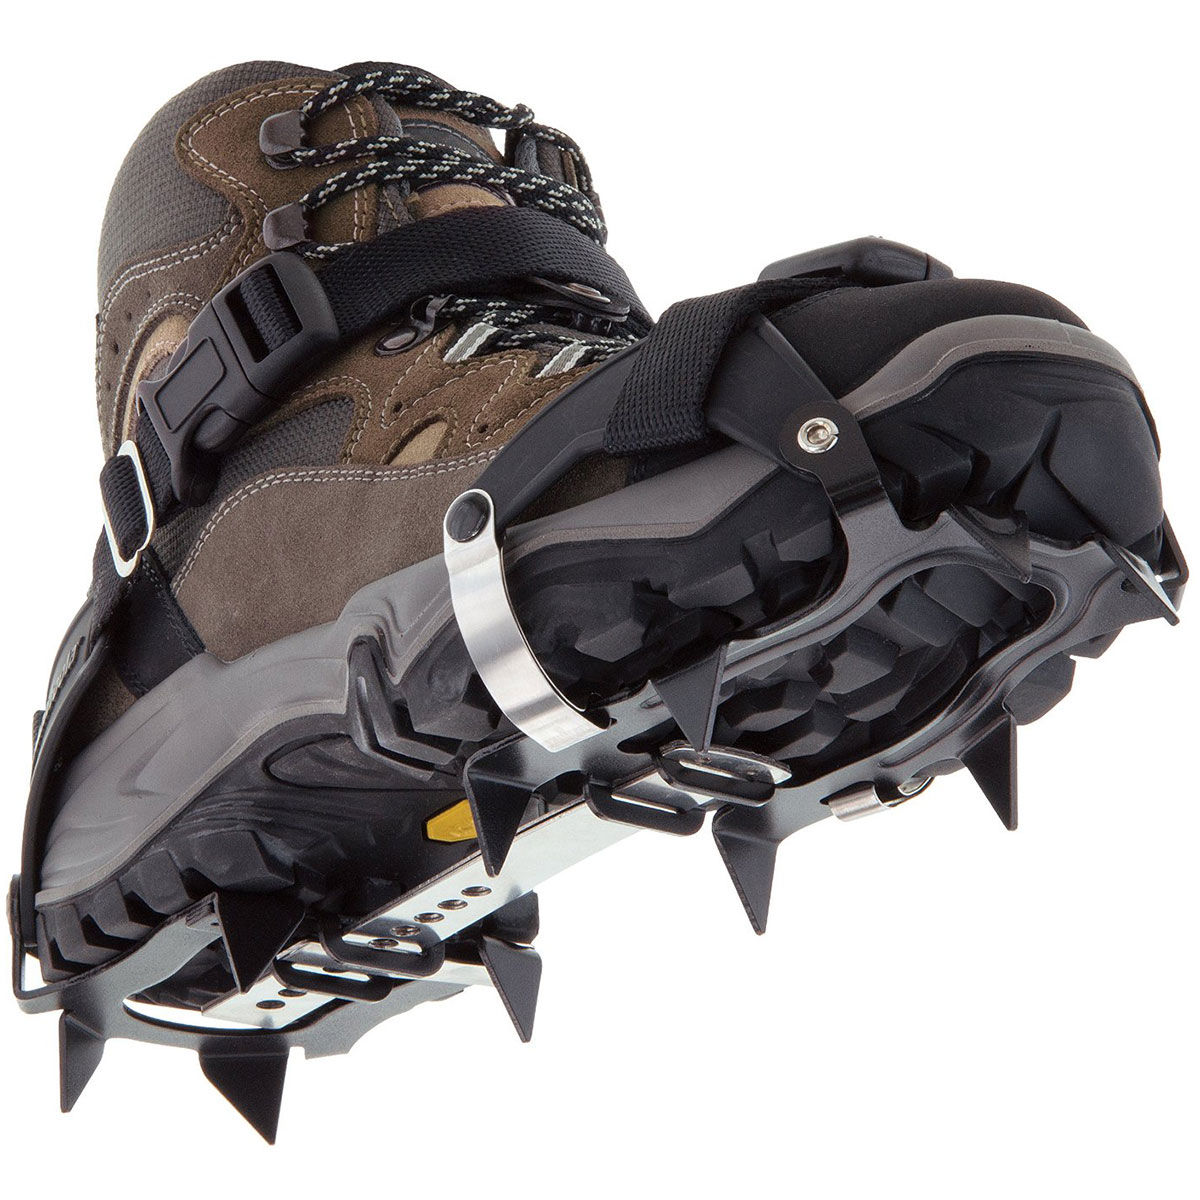 photo: Kahtoola K-10 Hiking Crampon crampon